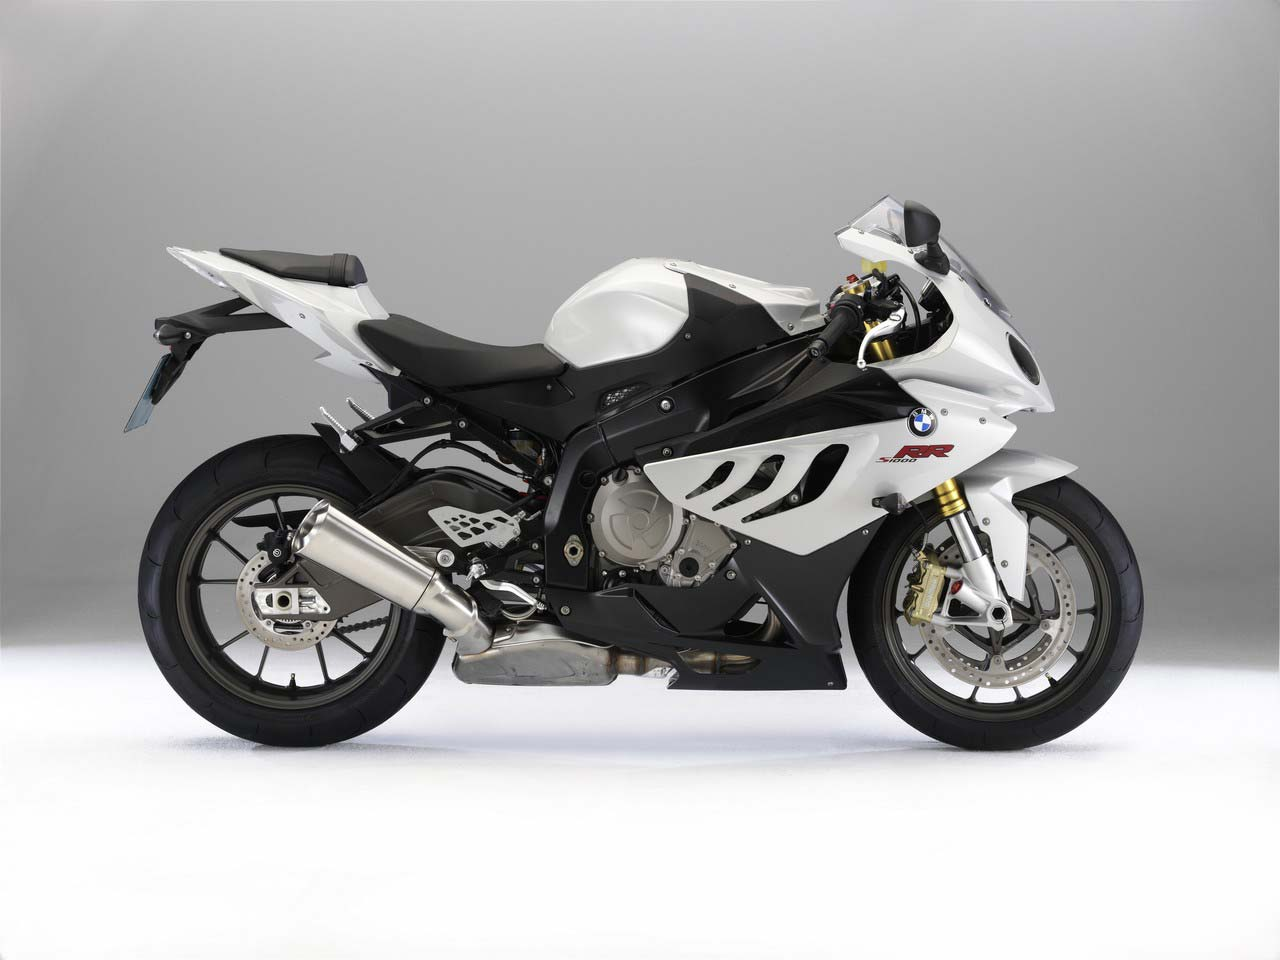 wiring diagram bmw r1200c with Motoblogar Wordpress on 692077 New To The 964 Need Help With Wiring together with Motoblogar wordpress likewise Bmw R 1150 Gs Wiring Diagram further R 1100 Gs Electrical Circuit Diagrams likewise As7.